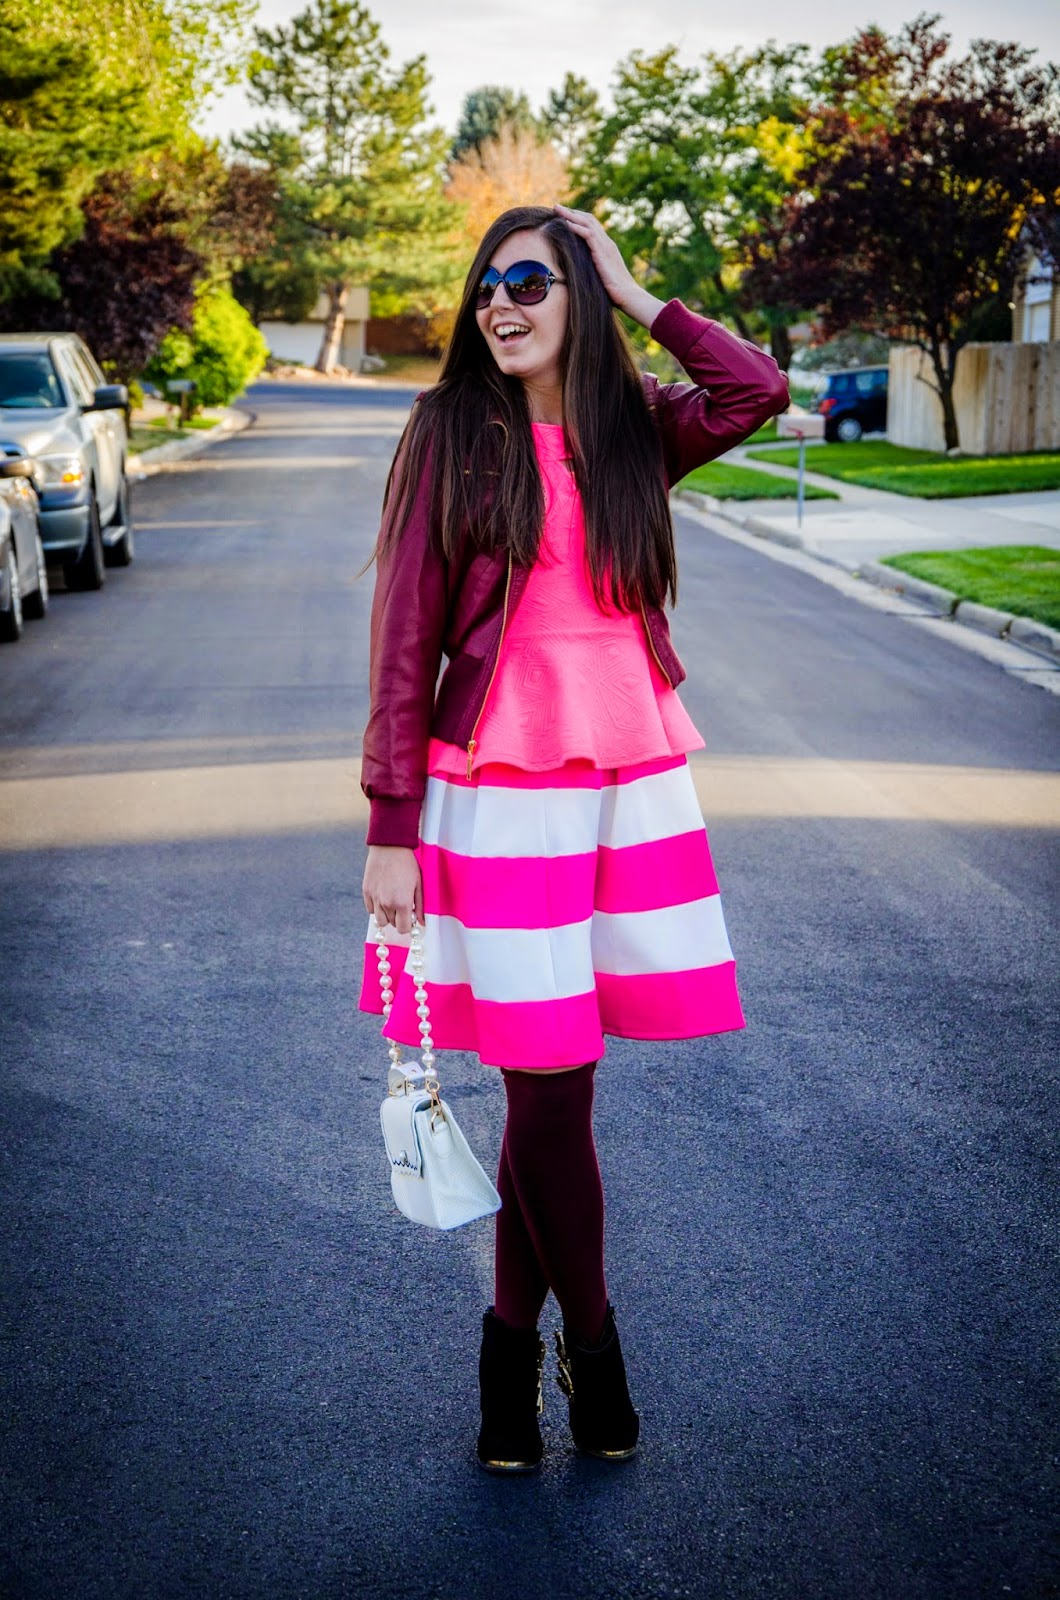 from summer to fall wear, summer to fall transitional outfit, how to wear a striped skirt in summer and fall, fall wear, burgundy leather jacket, pink striped skirt, pink peplum top, knee high socks, thigh high socks, wedges, ankle booties,